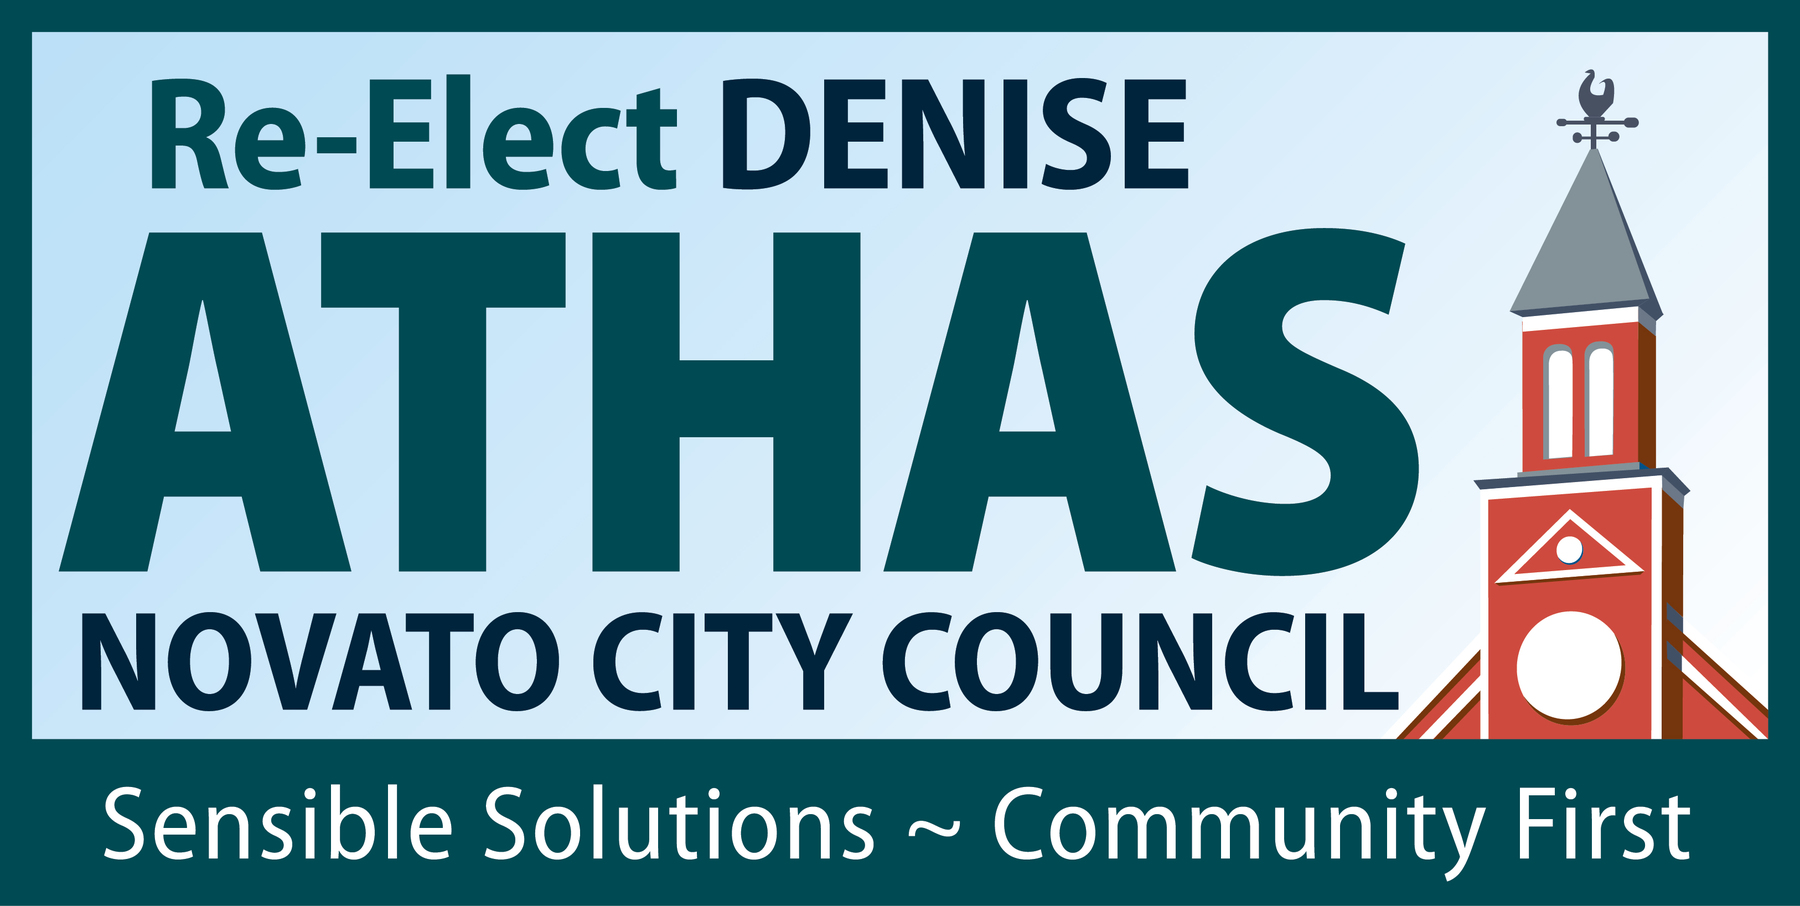 Denise Athas for City Council 2017: Denise Athas for City Council 2017